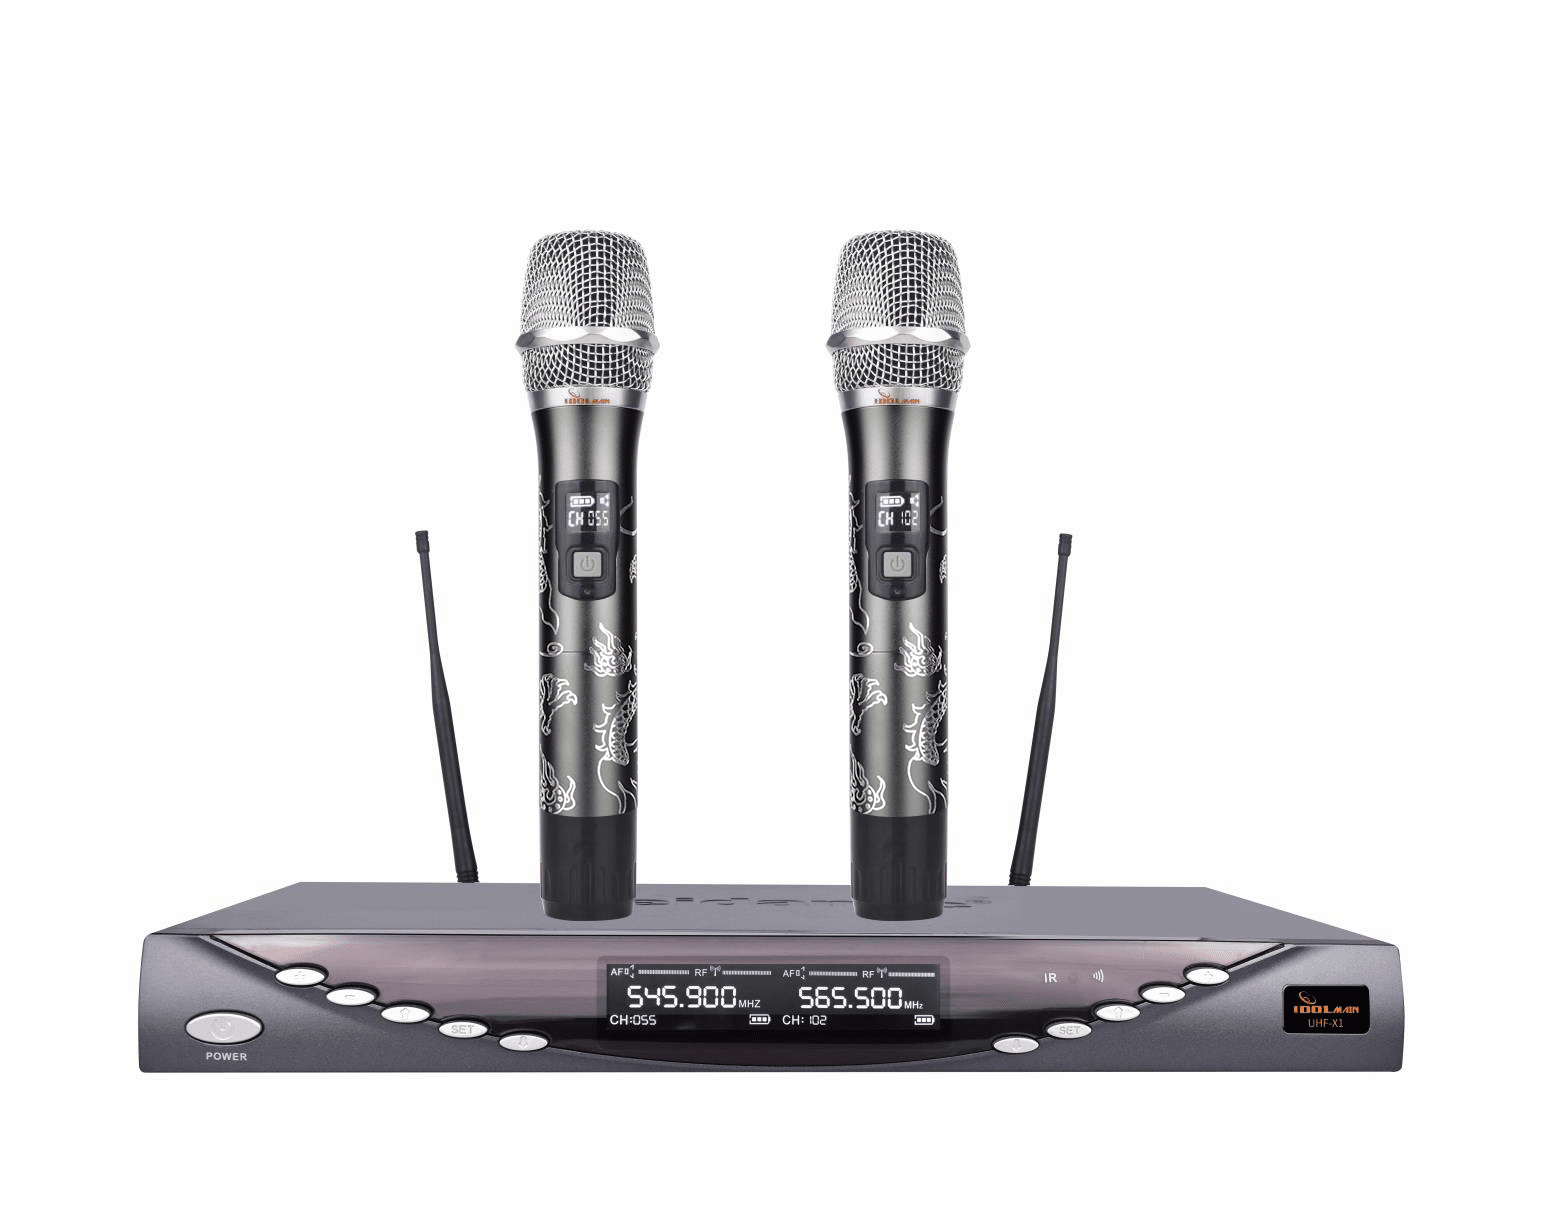 "IDOLmain UHF-X1D Dragon Engraved-Limited Edition Professional Performance With Anti Feedback,Ultra Low Distortion, and No-Touch Frequency Scanning With  Digital Pilot Technology Dual Wireless Microphone System <font color="" orange""><b>NEW 2019 </b></font>"